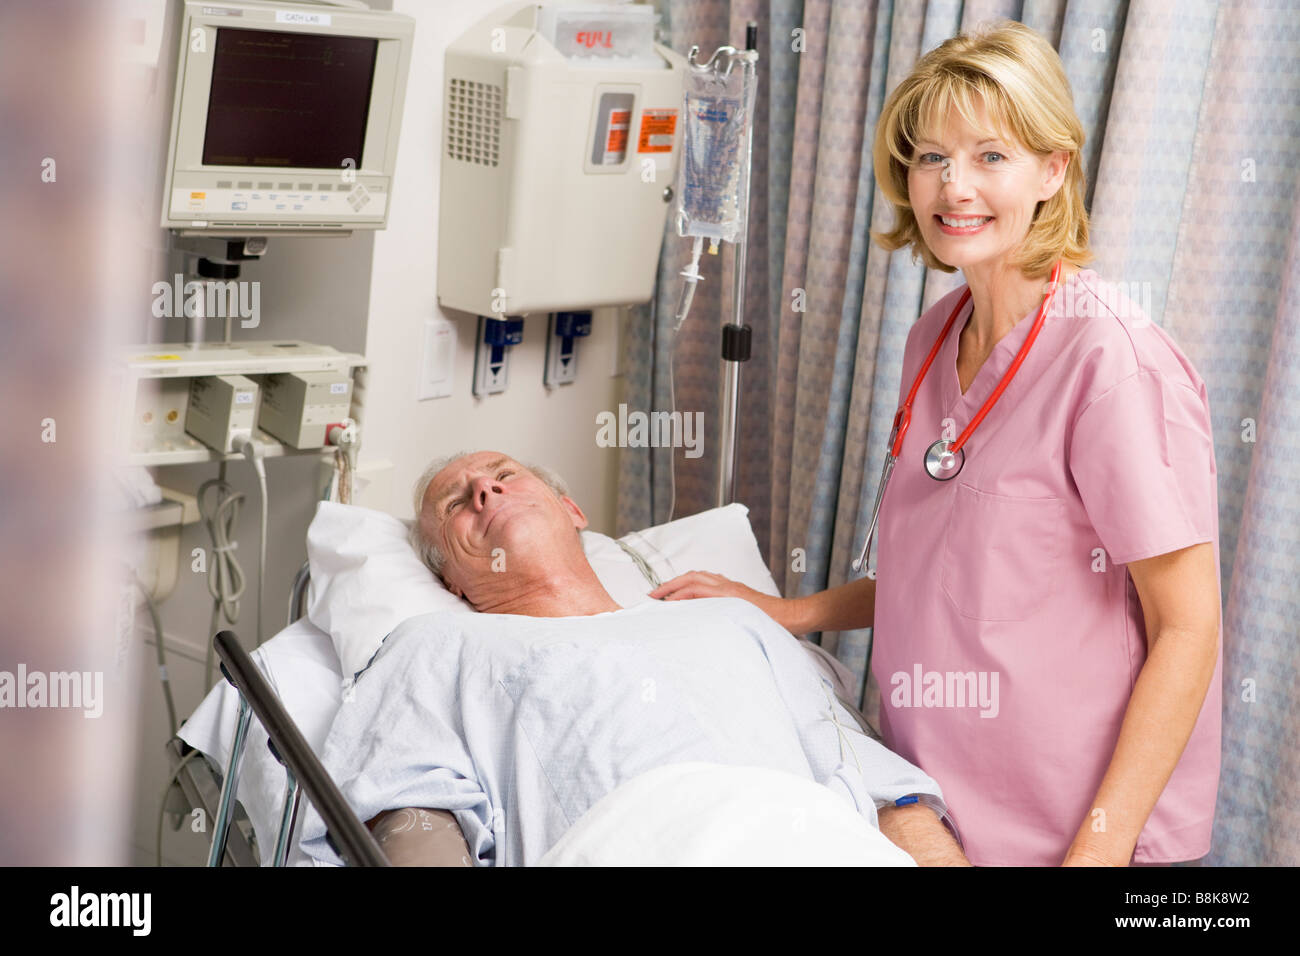 Doctor Caring For Patient - Stock Image